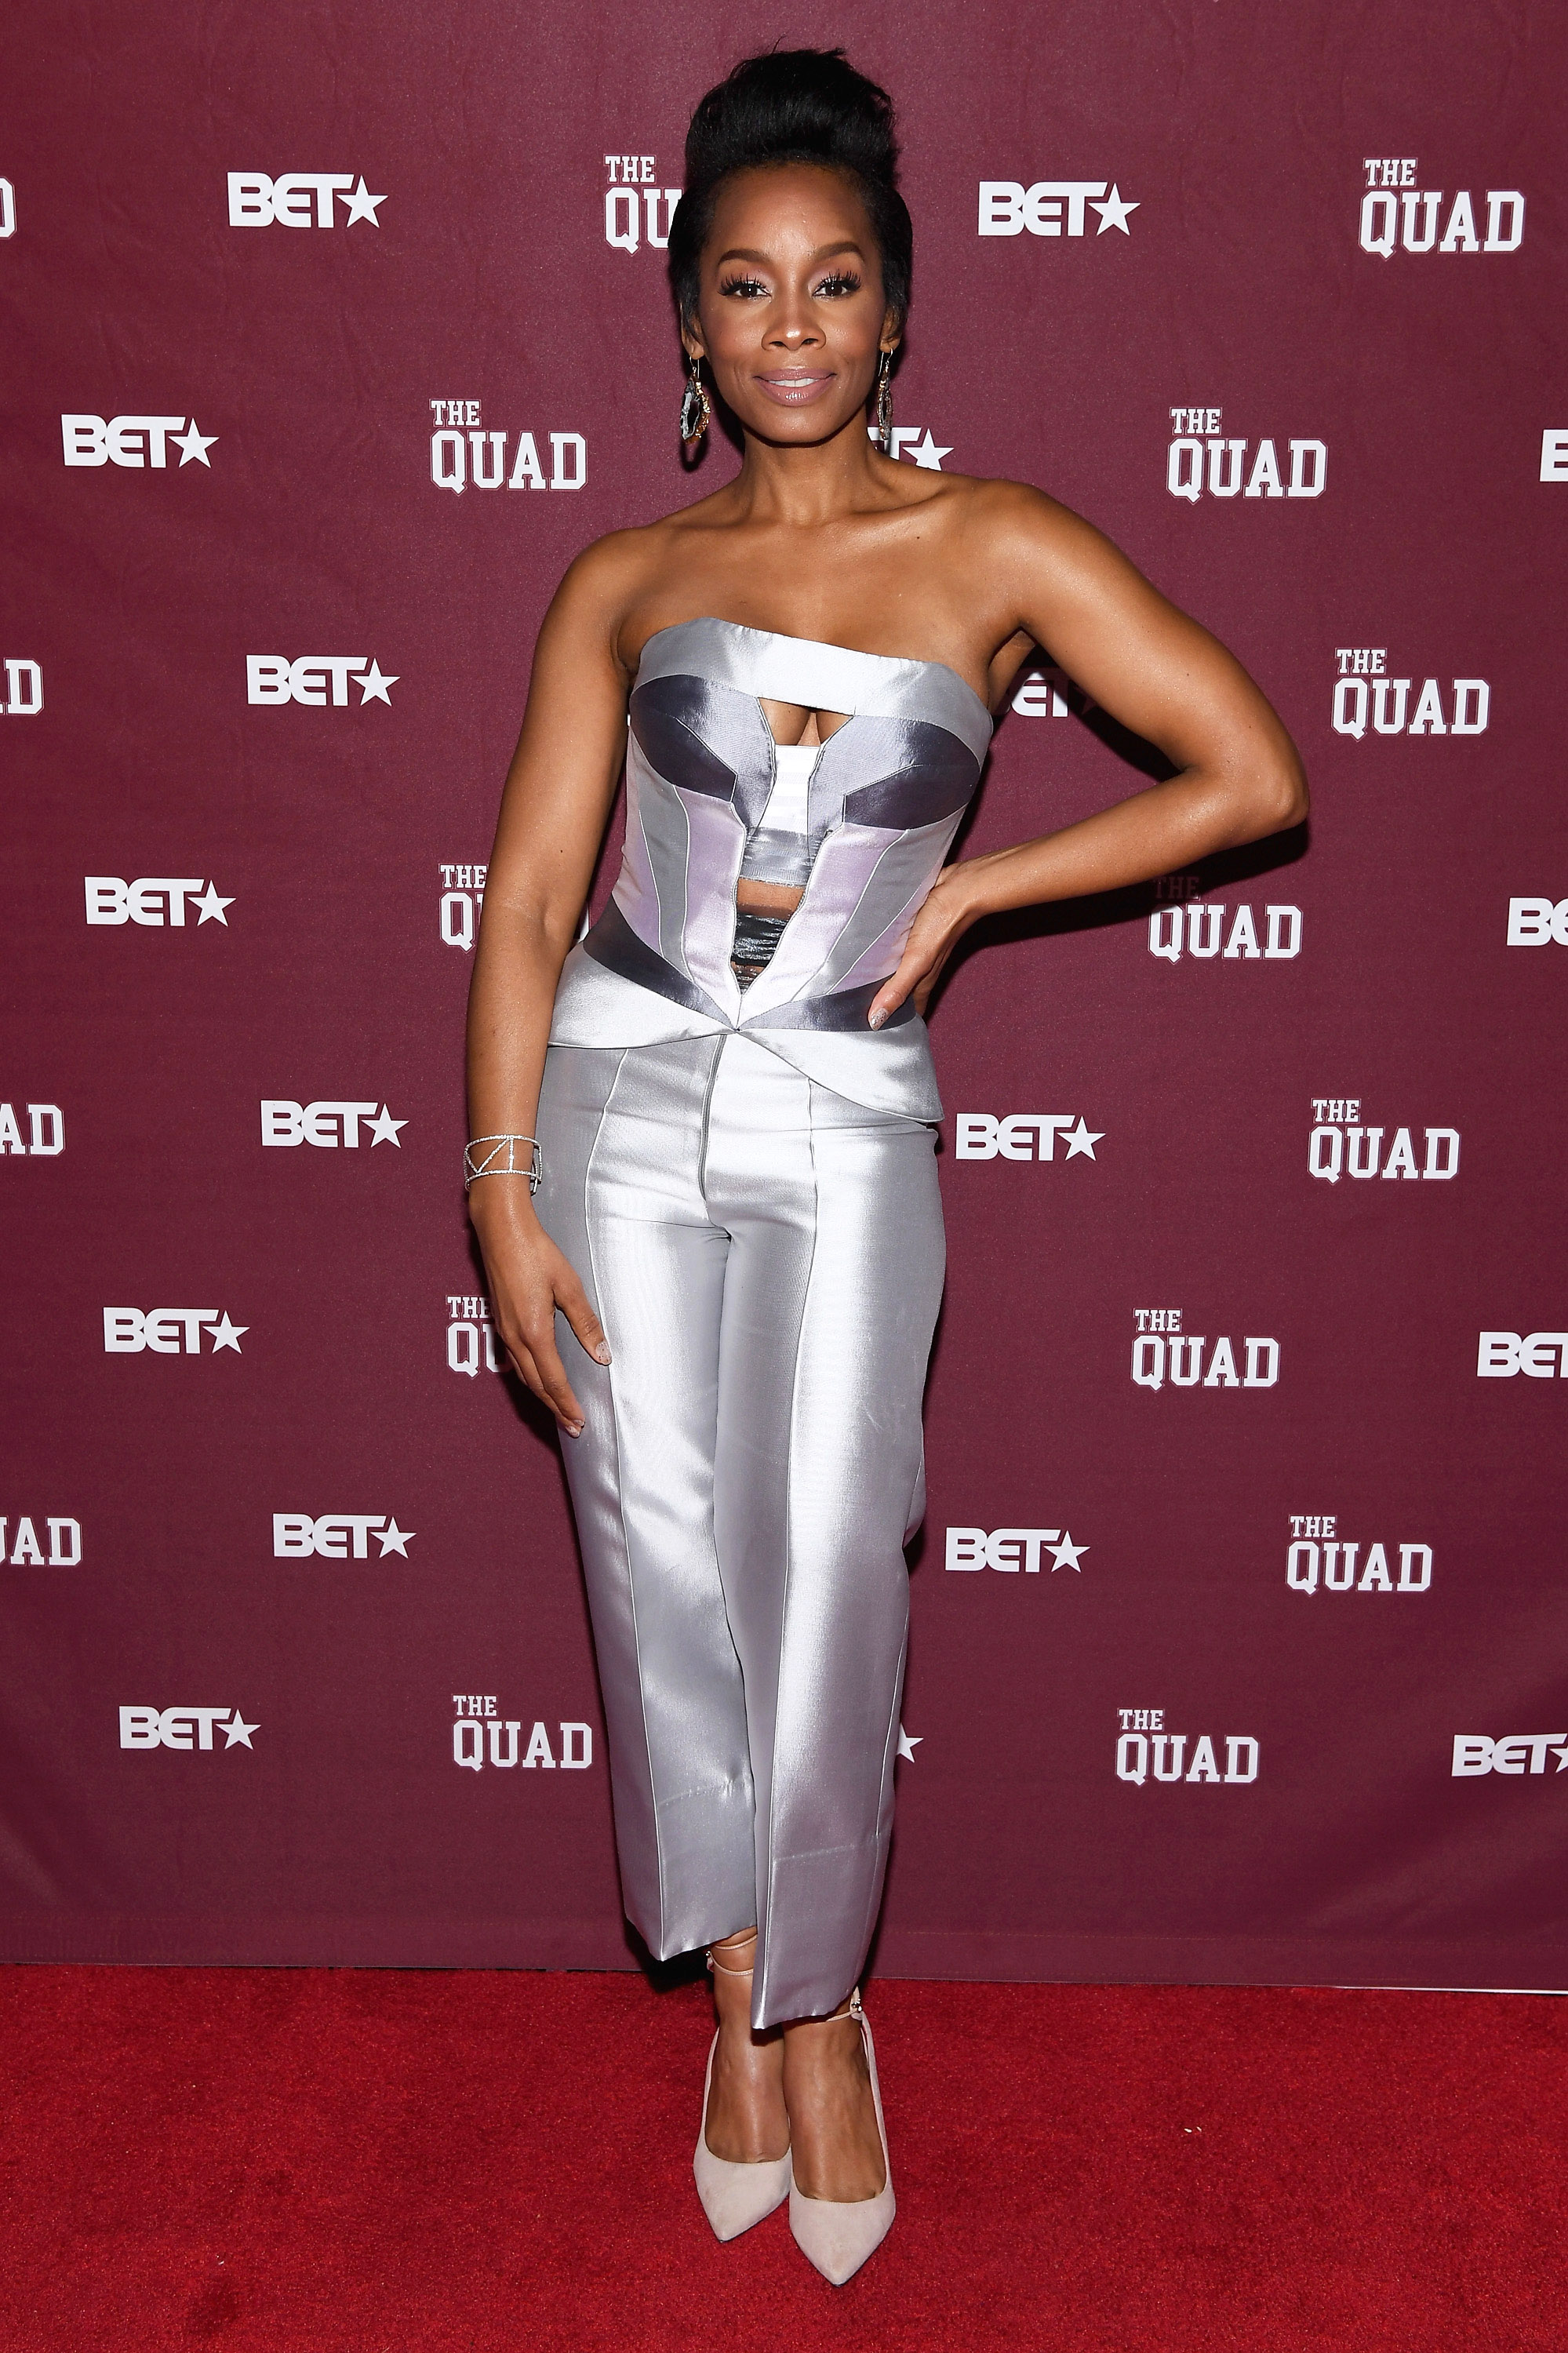 BET Presents The Premiere Screening Of 'The Quad' - Arrivals